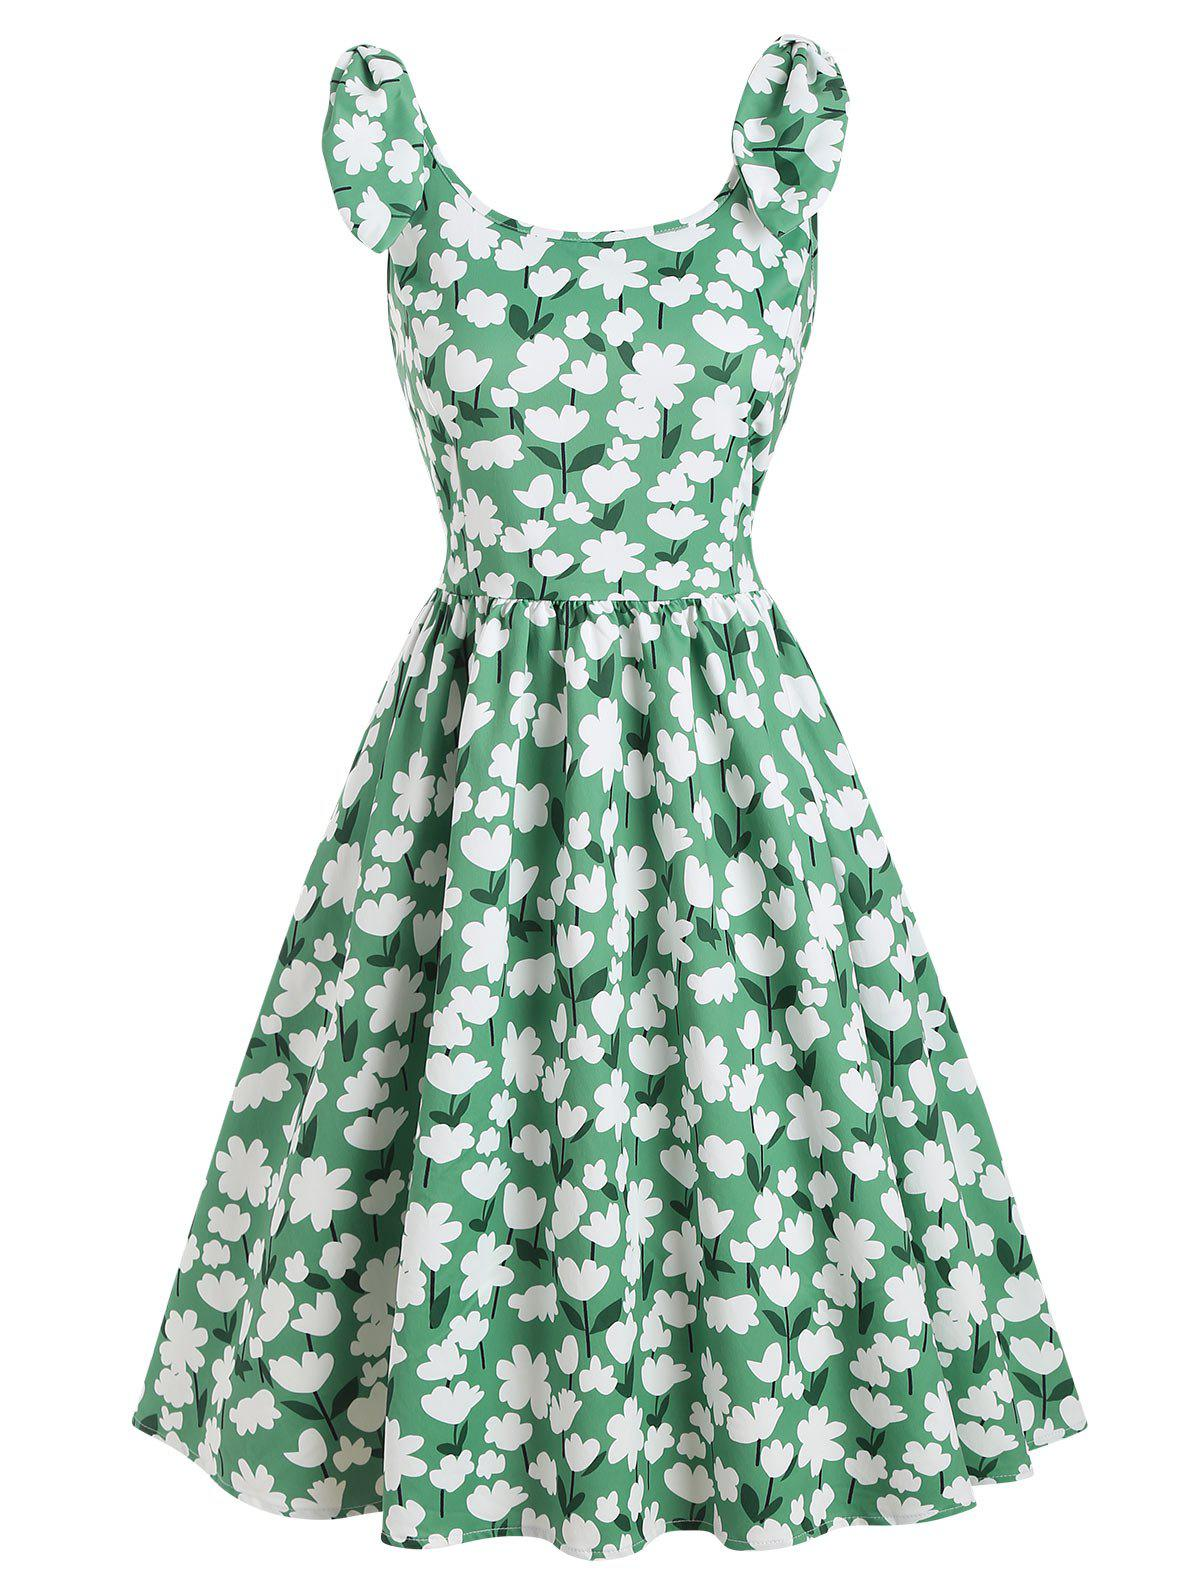 Bowknot Floral Print A Line 1950s Vintage Dress - MACAW BLUE GREEN S